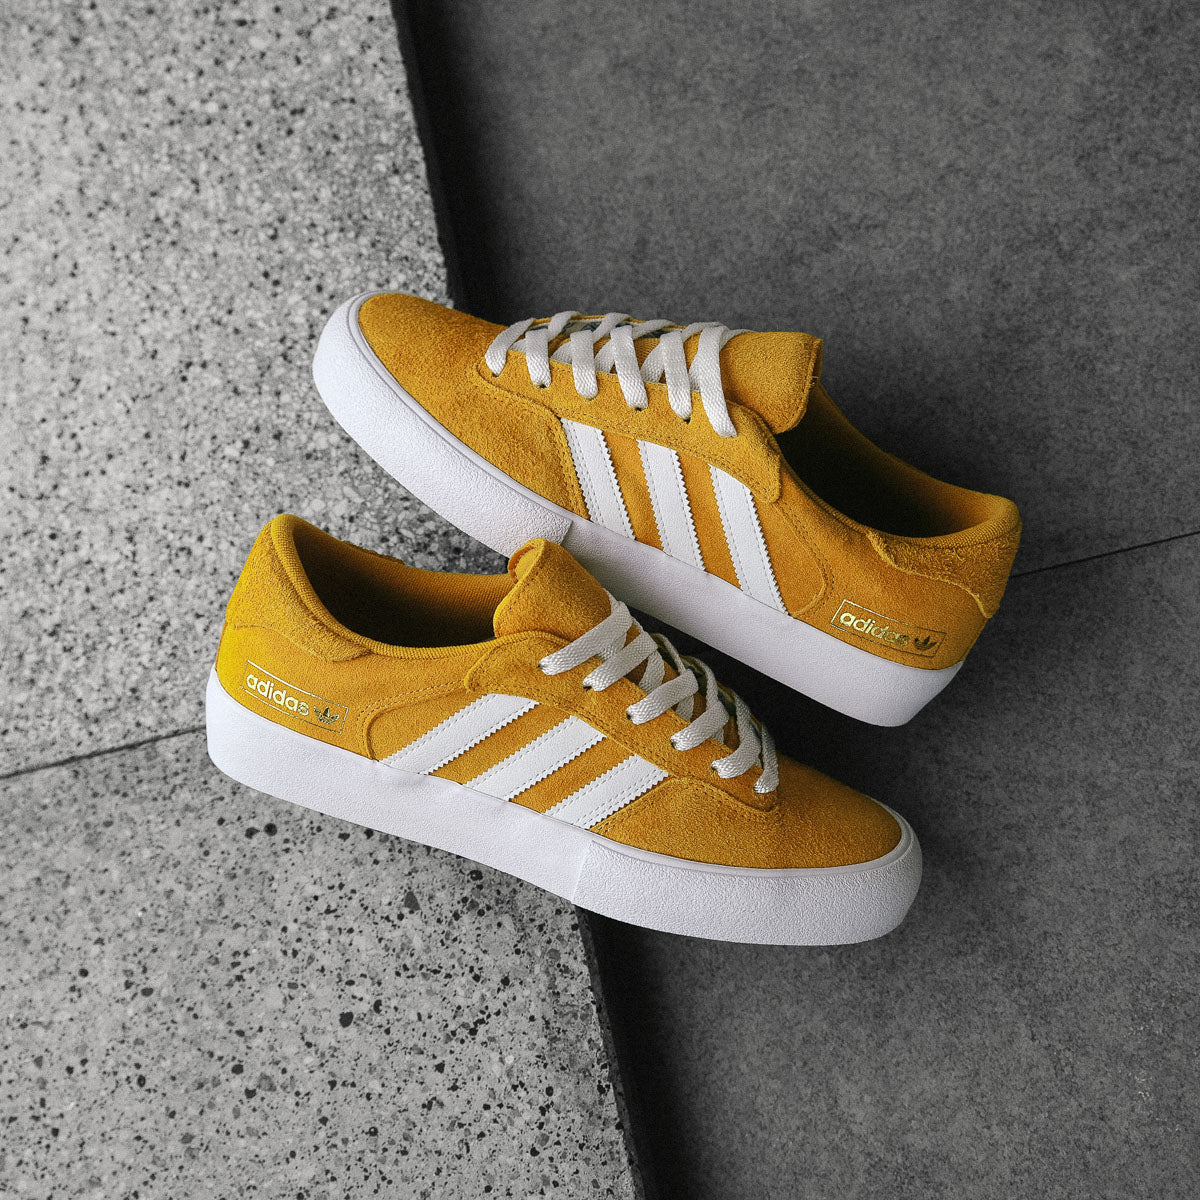 adidas Skateboarding: Introducing the Matchbreak Super | Flatspot